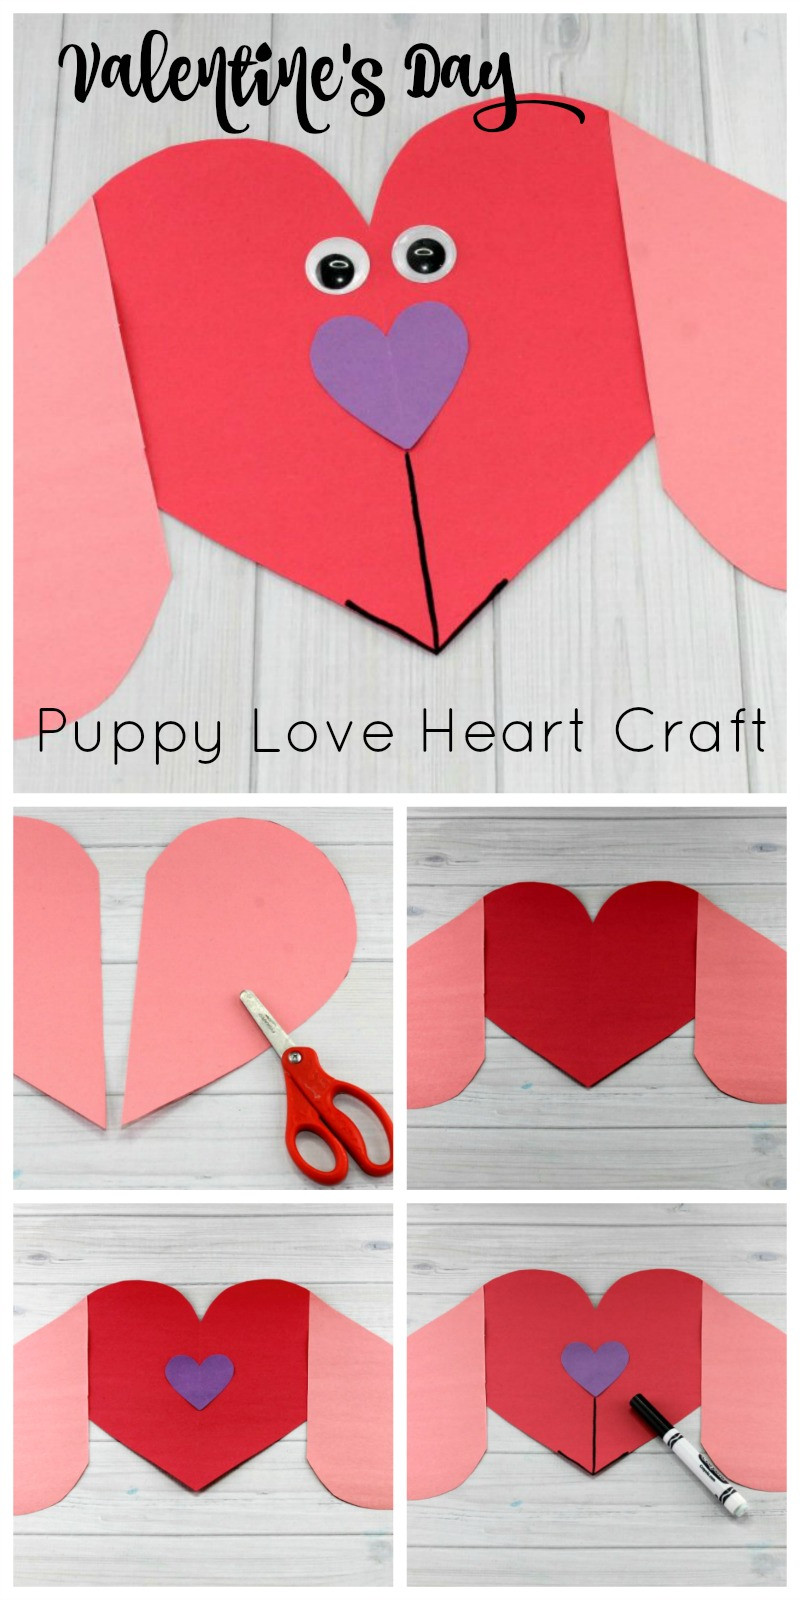 Best ideas about Valentine Crafts For Preschoolers To Make . Save or Pin Puppy Love Preschool Heart Craft to Make this Valentine s Day Now.